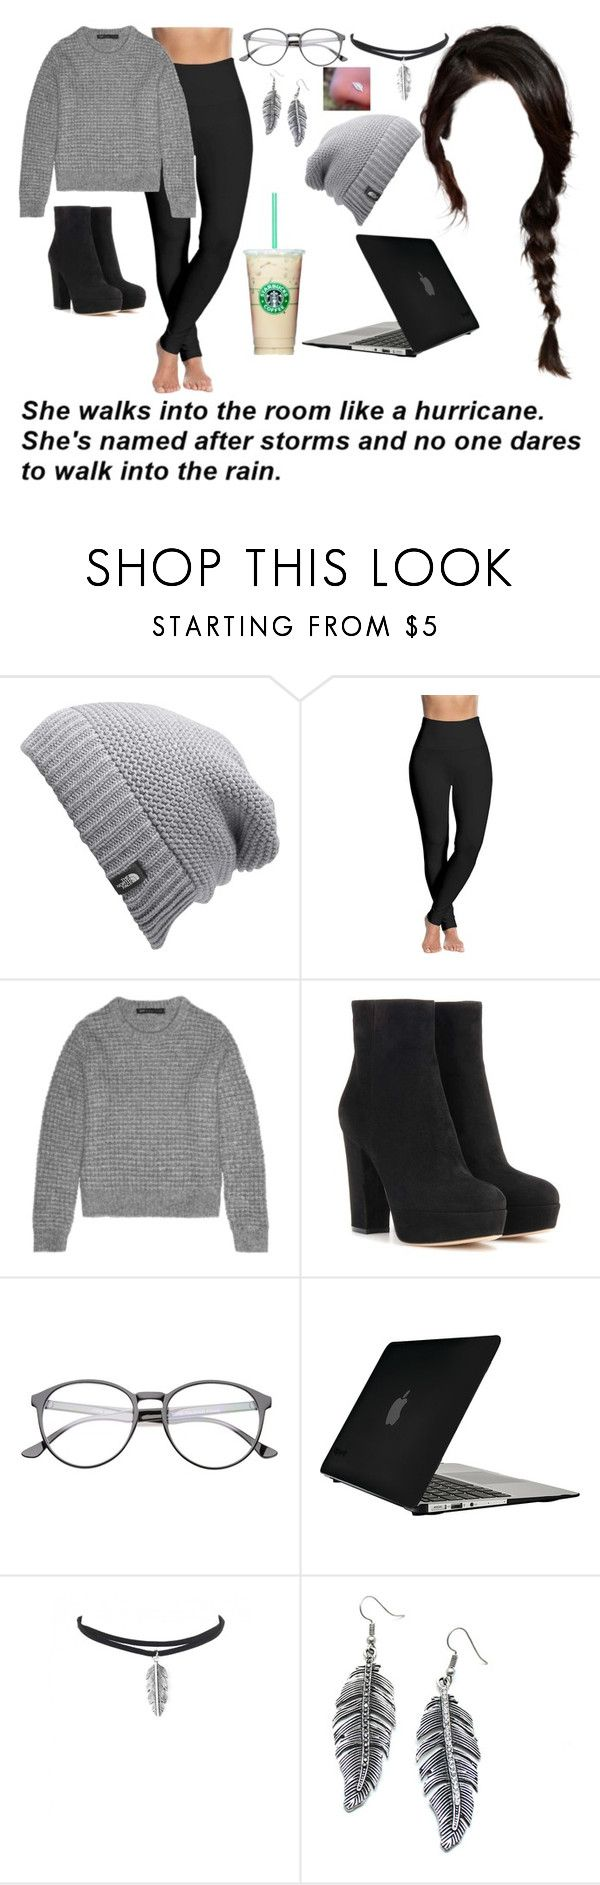 """Like a hurricane"" by ms-prettymama ❤ liked on Polyvore featuring The North Face, Lyssé Leggings, Marc by Marc Jacobs, Gianvito Rossi, Speck and Child Of Wild"